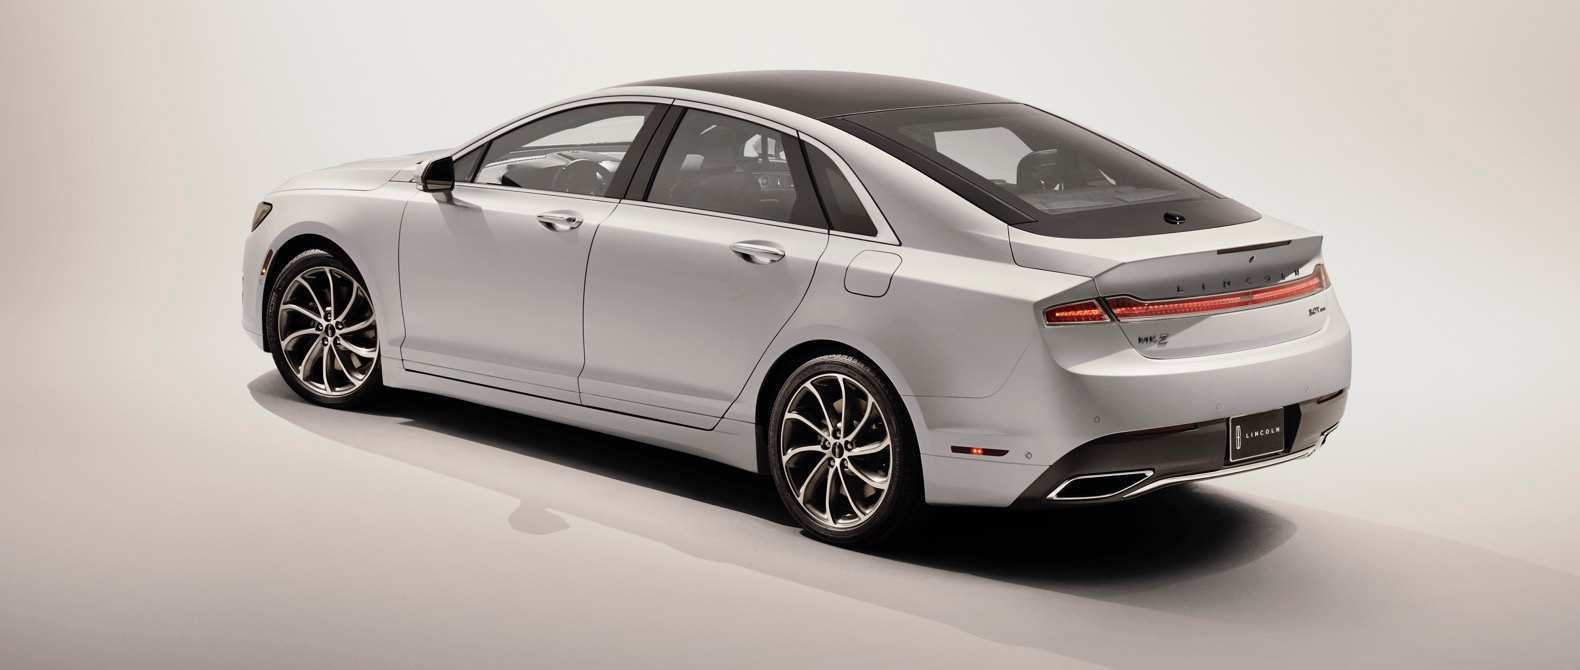 48 The Best 2020 Lincoln MKZ Specs And Review